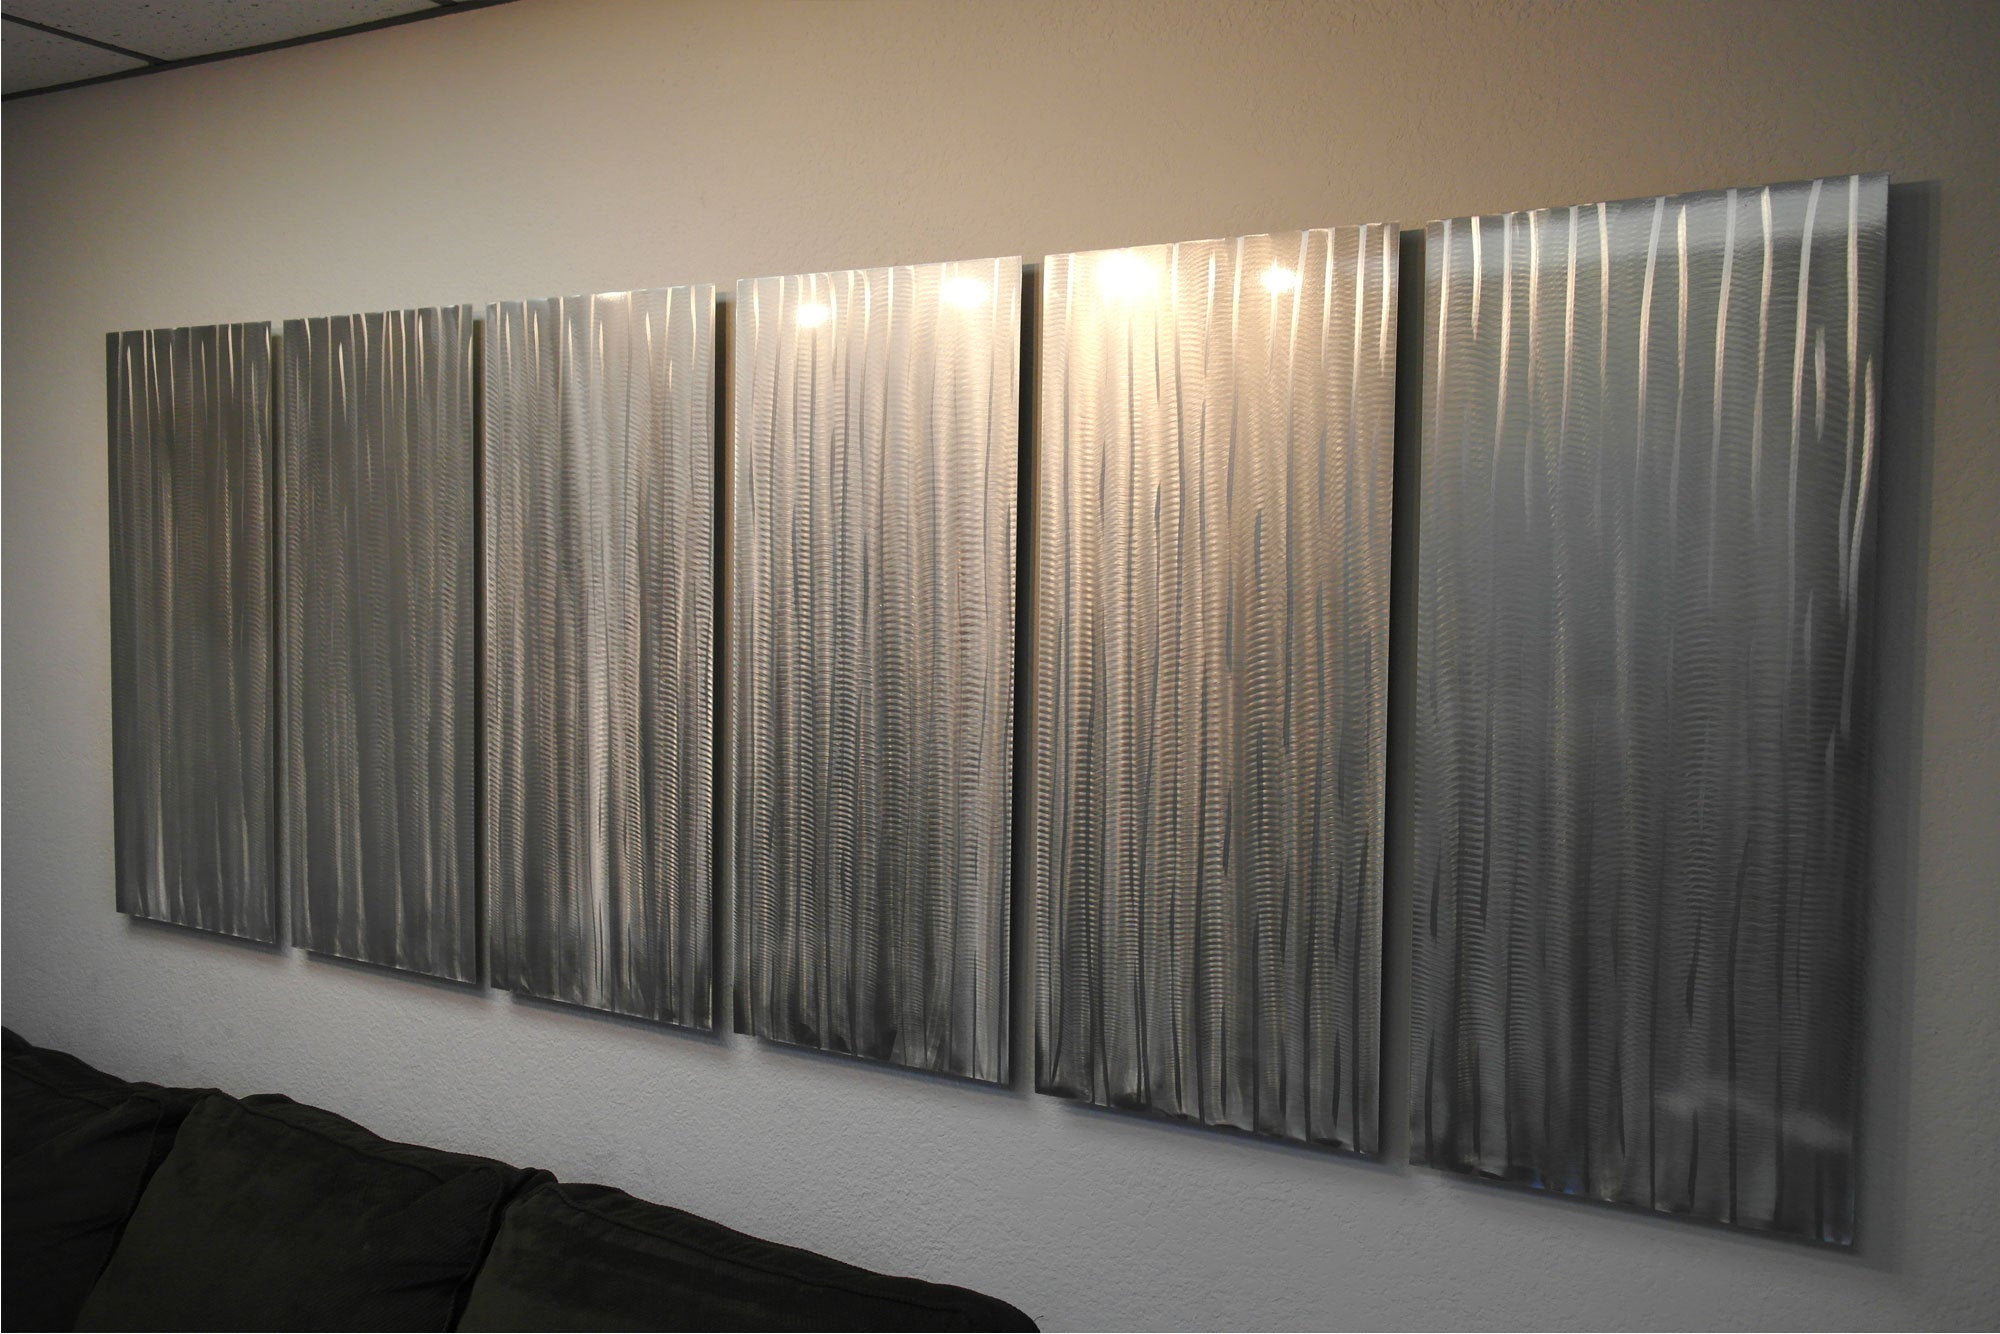 Metal Wall Art Decor Aluminum Abstract Contemporary Modern Sculpture Hanging Zen Textured – Bamboo Forest 36x95miles Shay With Regard To Contemporary Forest Metal Wall Decor (View 17 of 30)